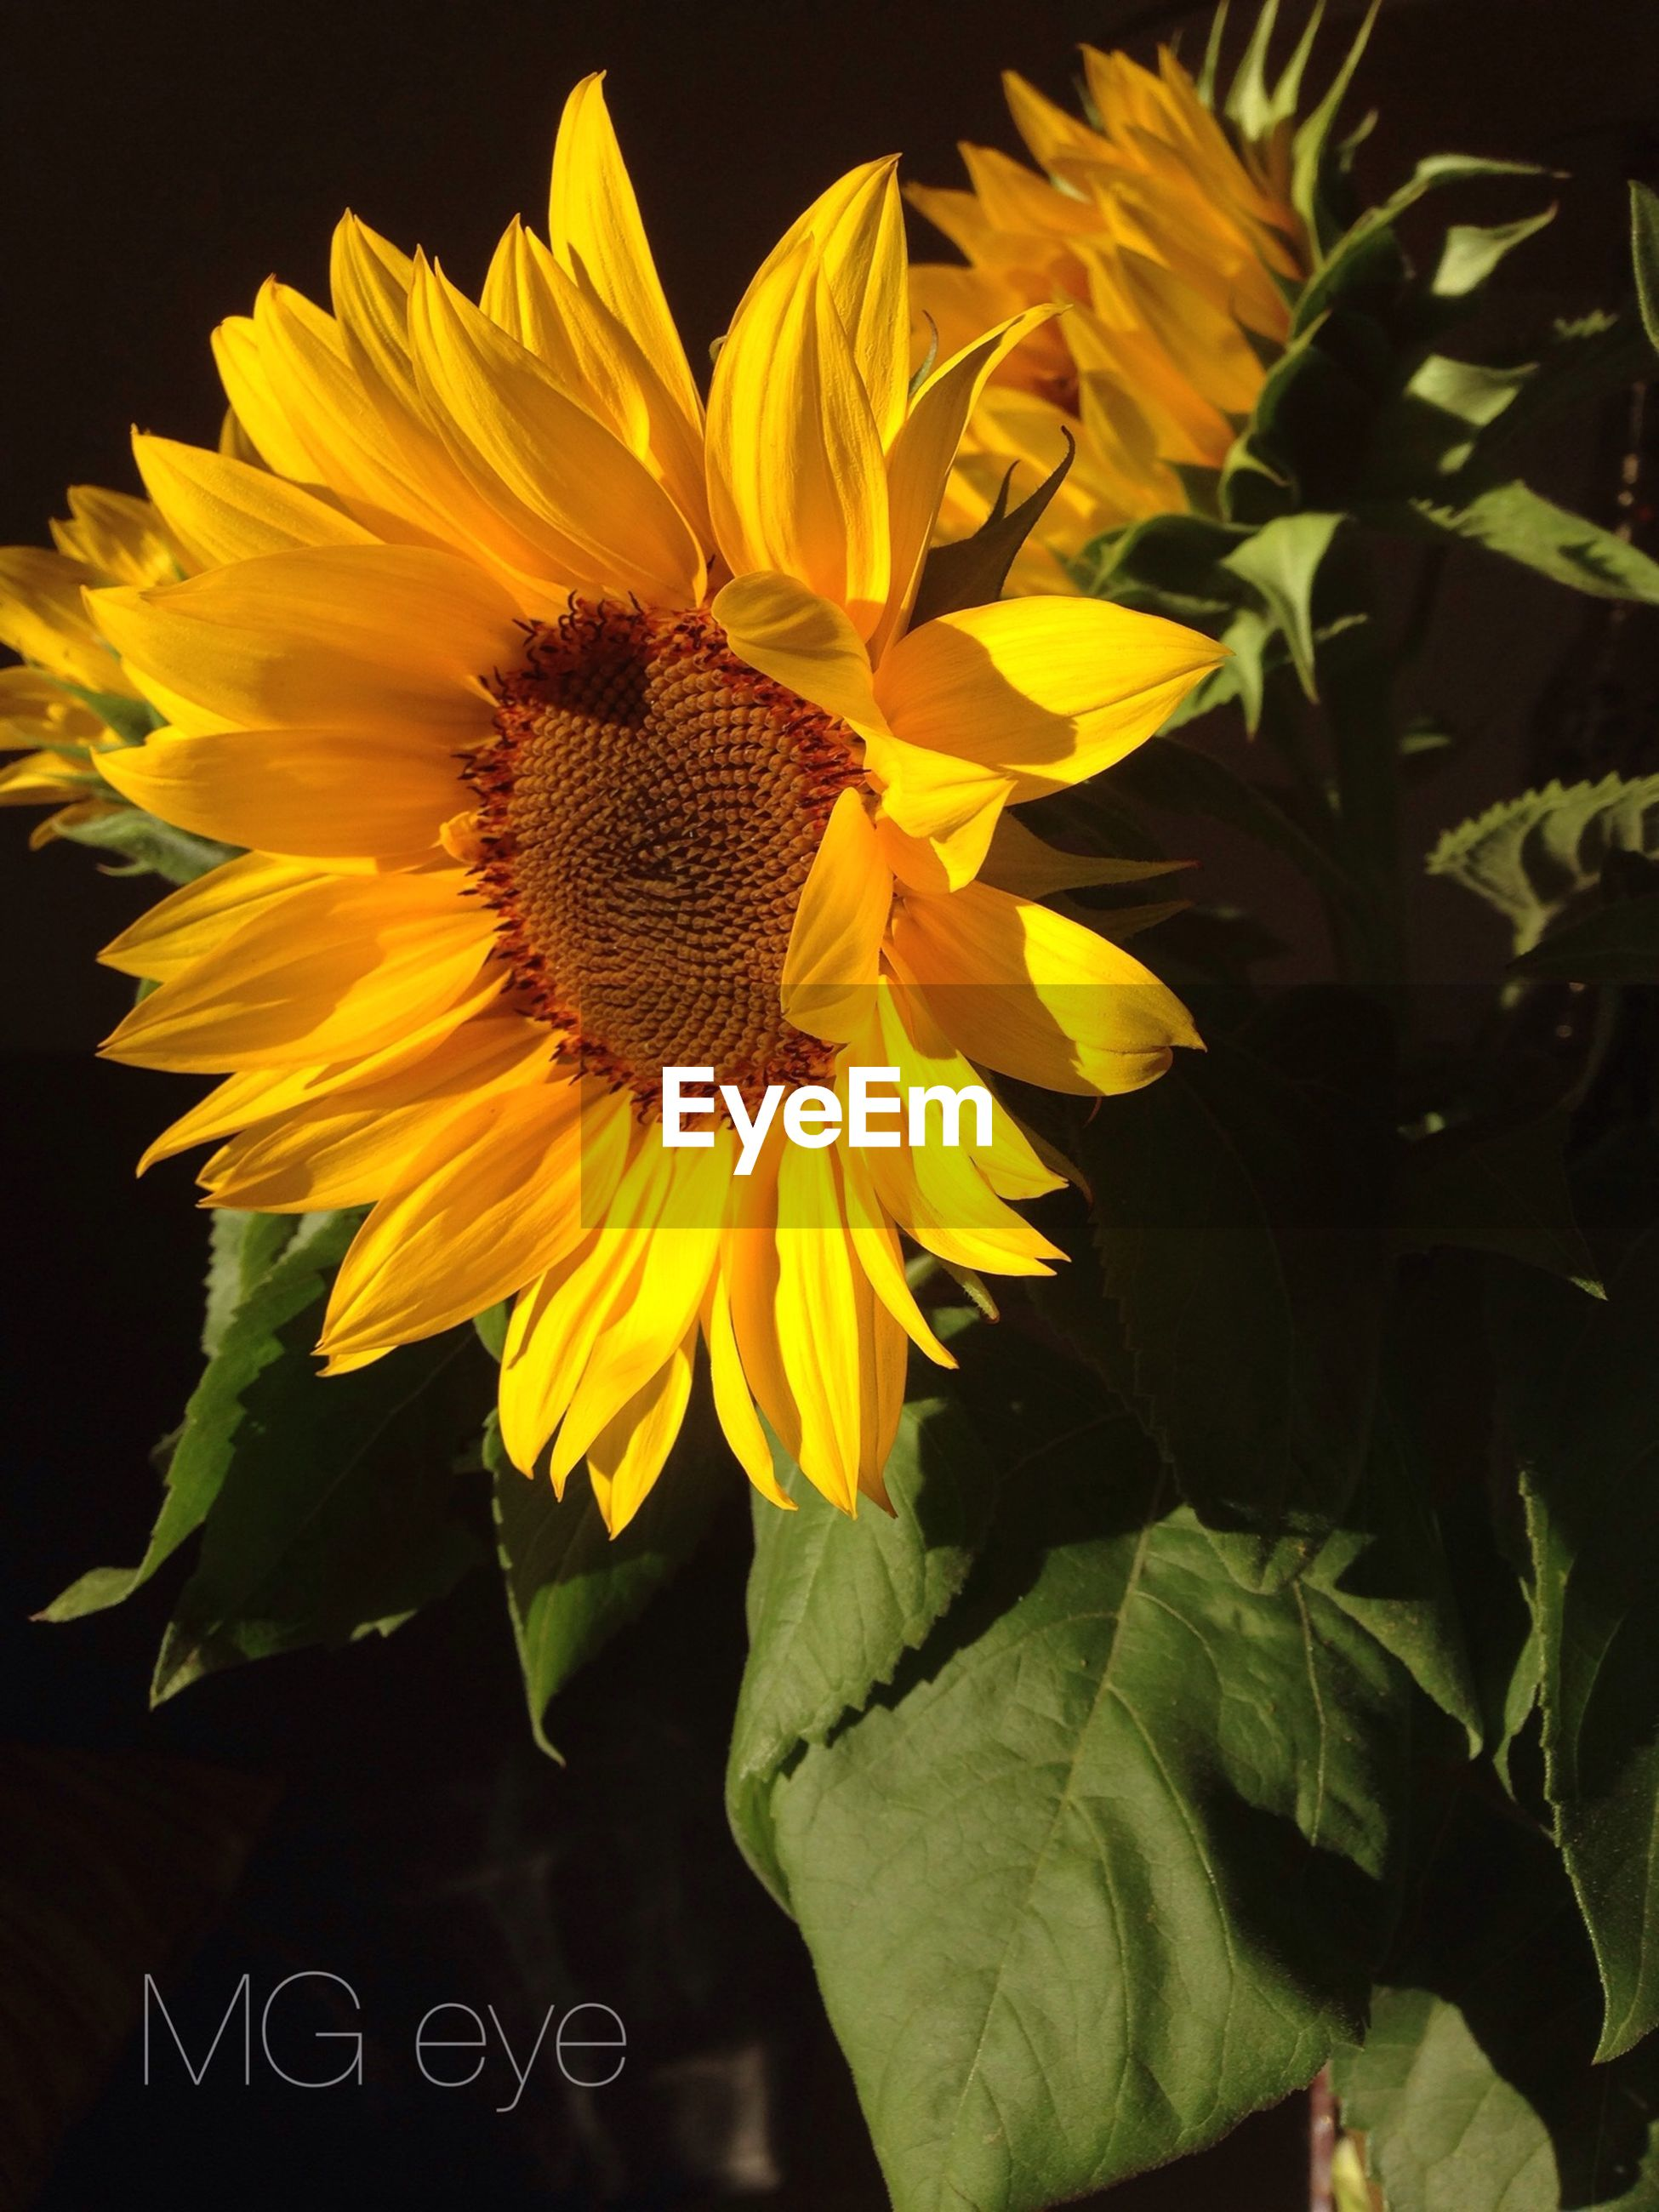 flower, petal, yellow, flower head, freshness, fragility, growth, beauty in nature, sunflower, plant, blooming, close-up, single flower, nature, pollen, leaf, in bloom, no people, blossom, focus on foreground